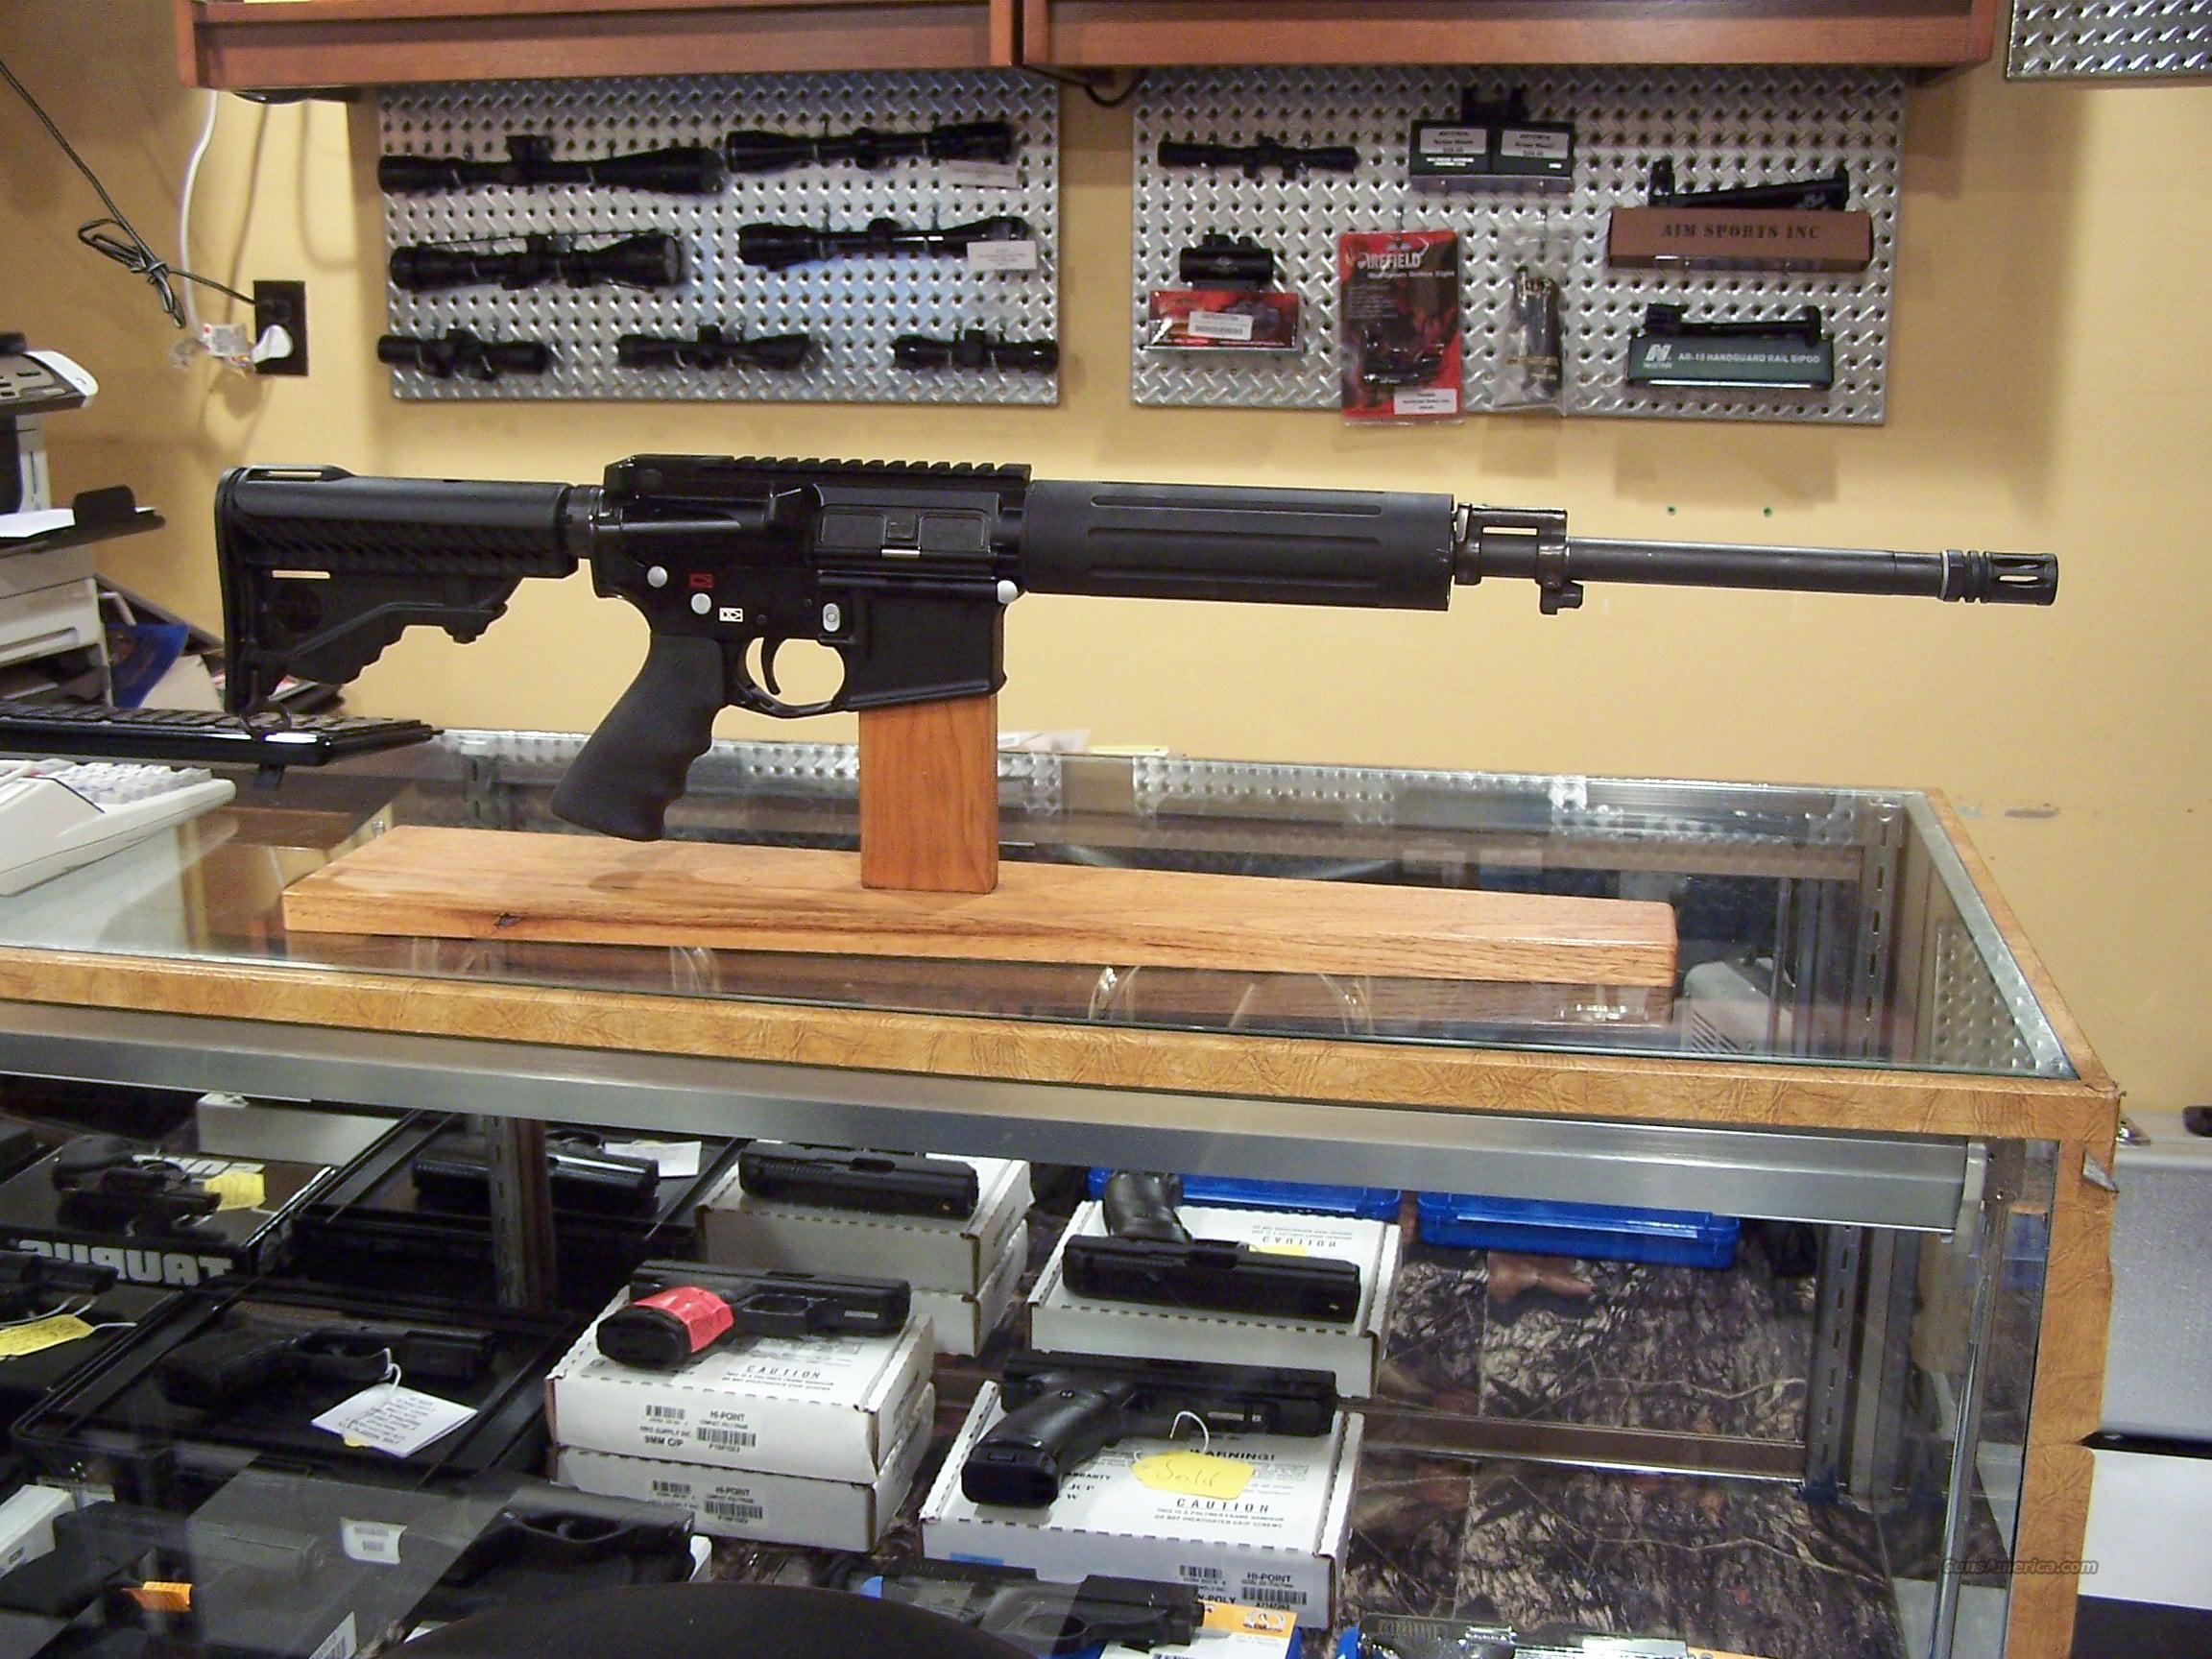 VERY NICE AR 15 IN 6.8MM ! GREAT PRICE !  Guns > Rifles > AR-15 Rifles - Small Manufacturers > Complete Rifle